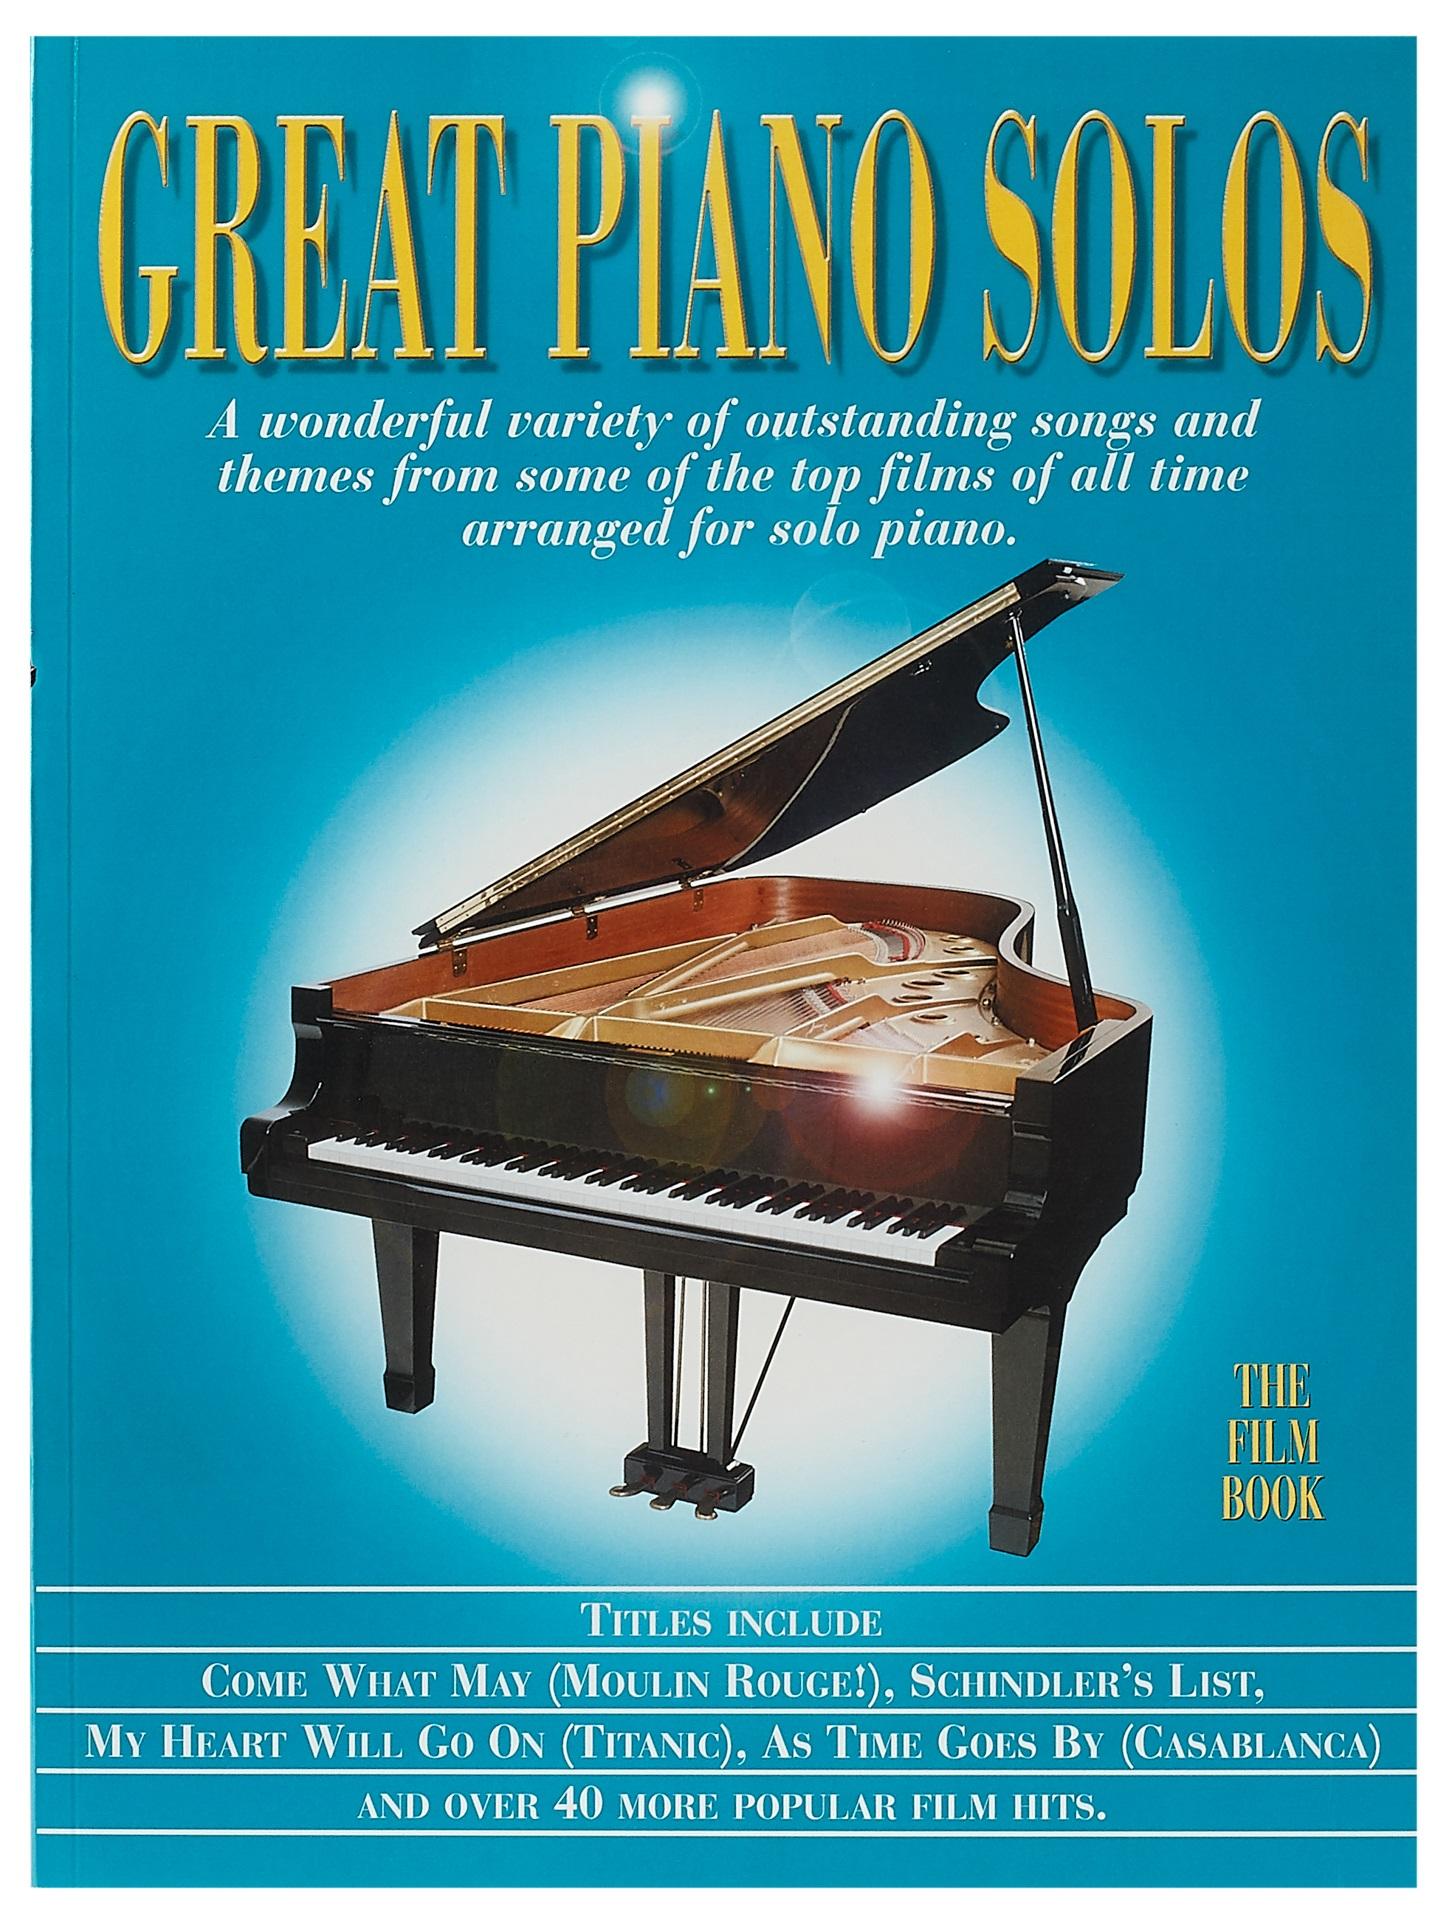 MS Great Piano Solos - The Film Book